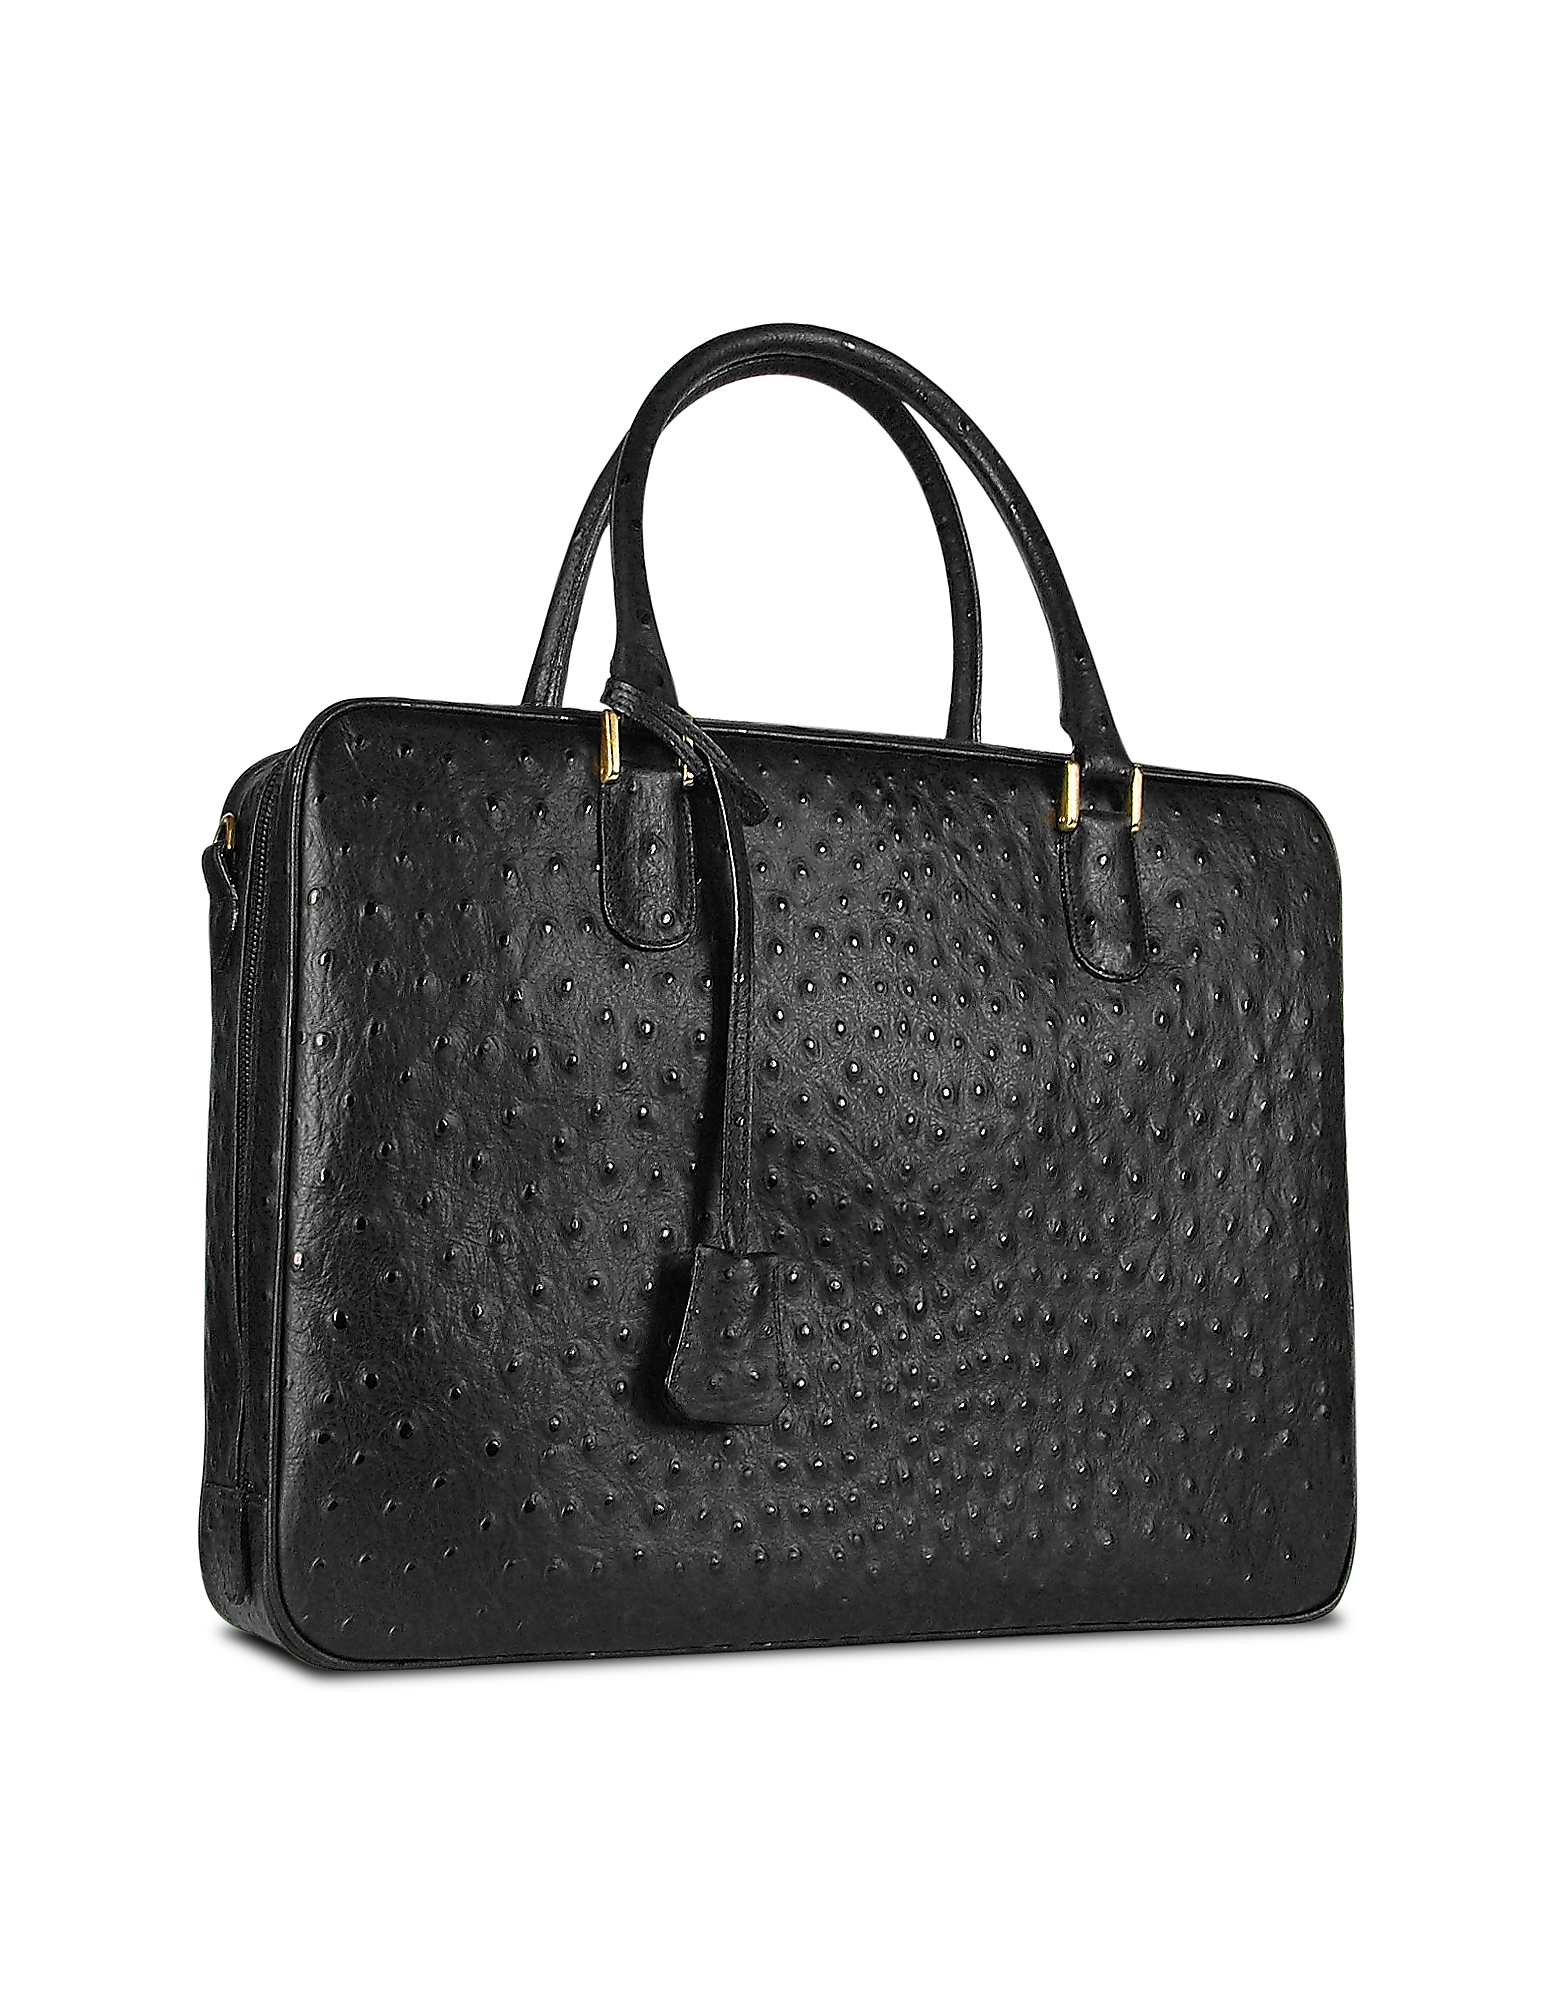 Fontanelli Designer Briefcases, Black Ostrich Stamped Leather Briefcase